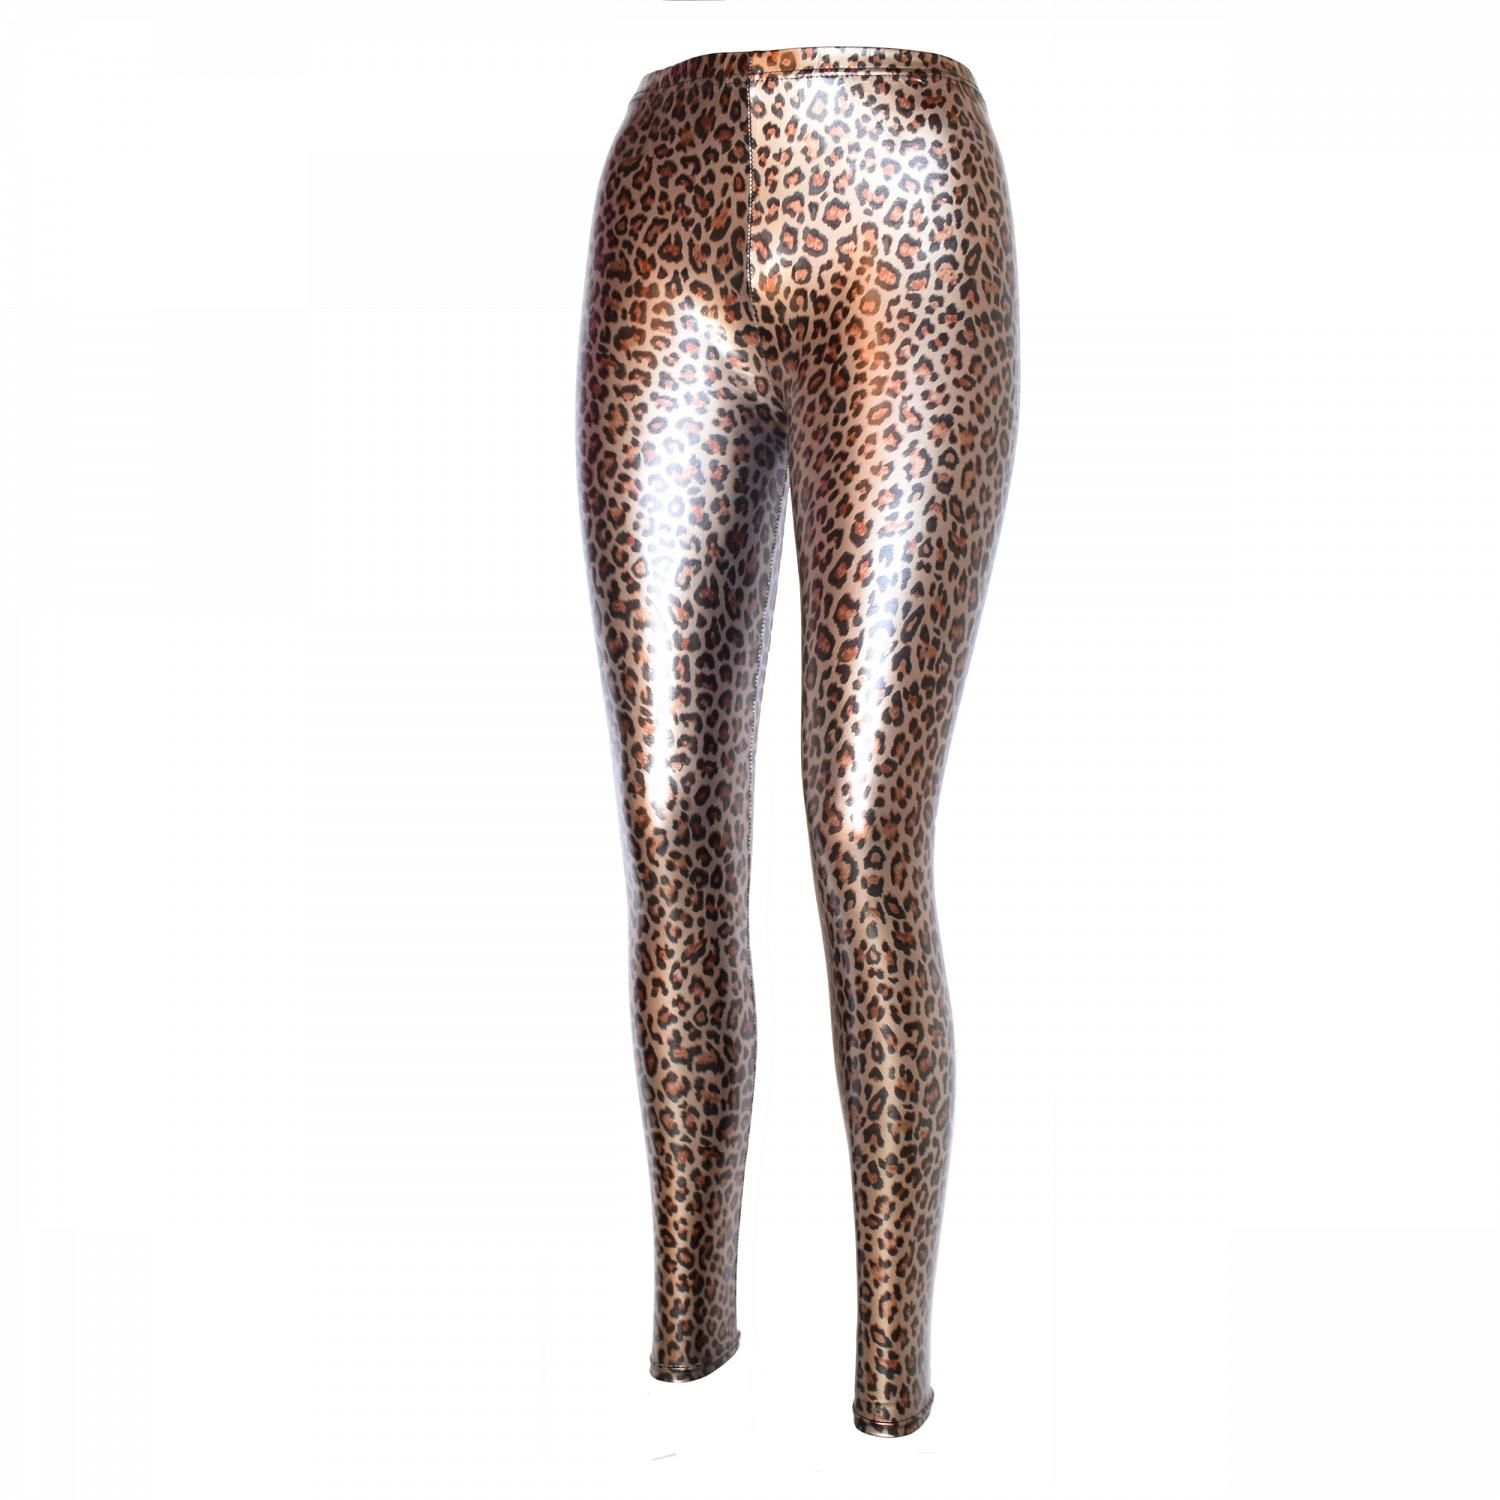 Wunderschöne Metallic Glanz Stretch Leggings leopard metallic 1